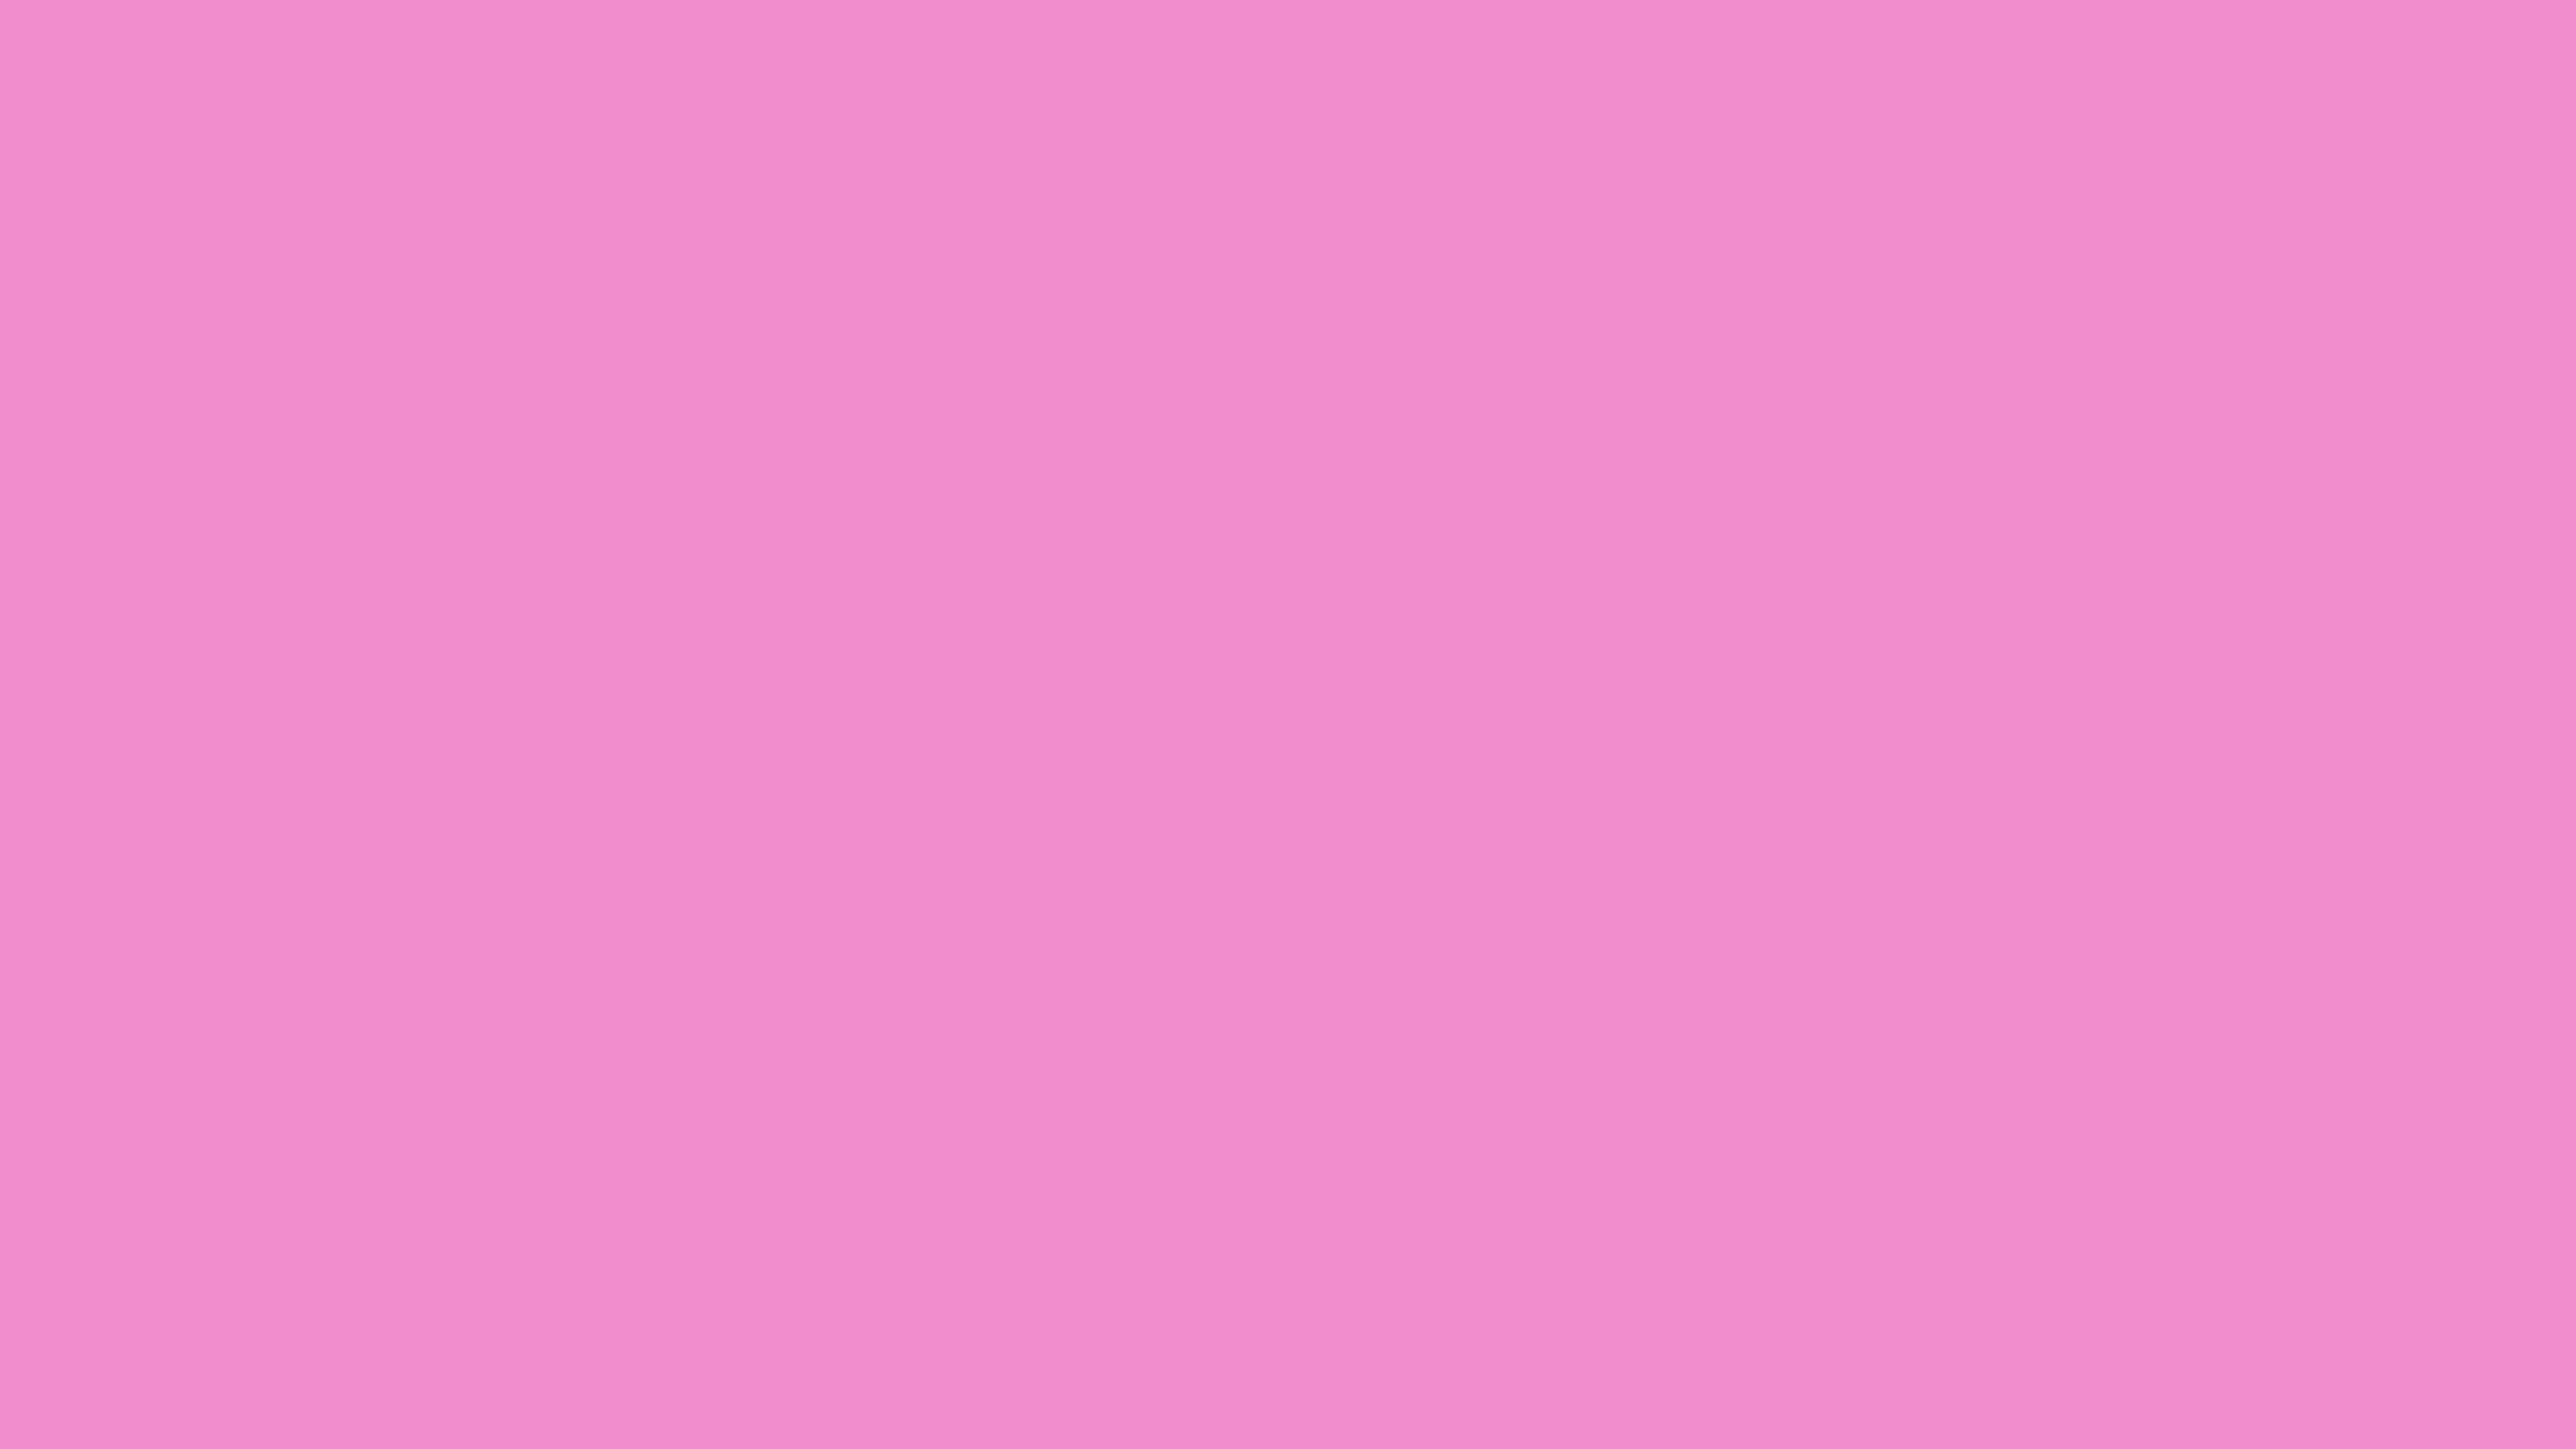 3840x2160 Orchid Pink Solid Color Background